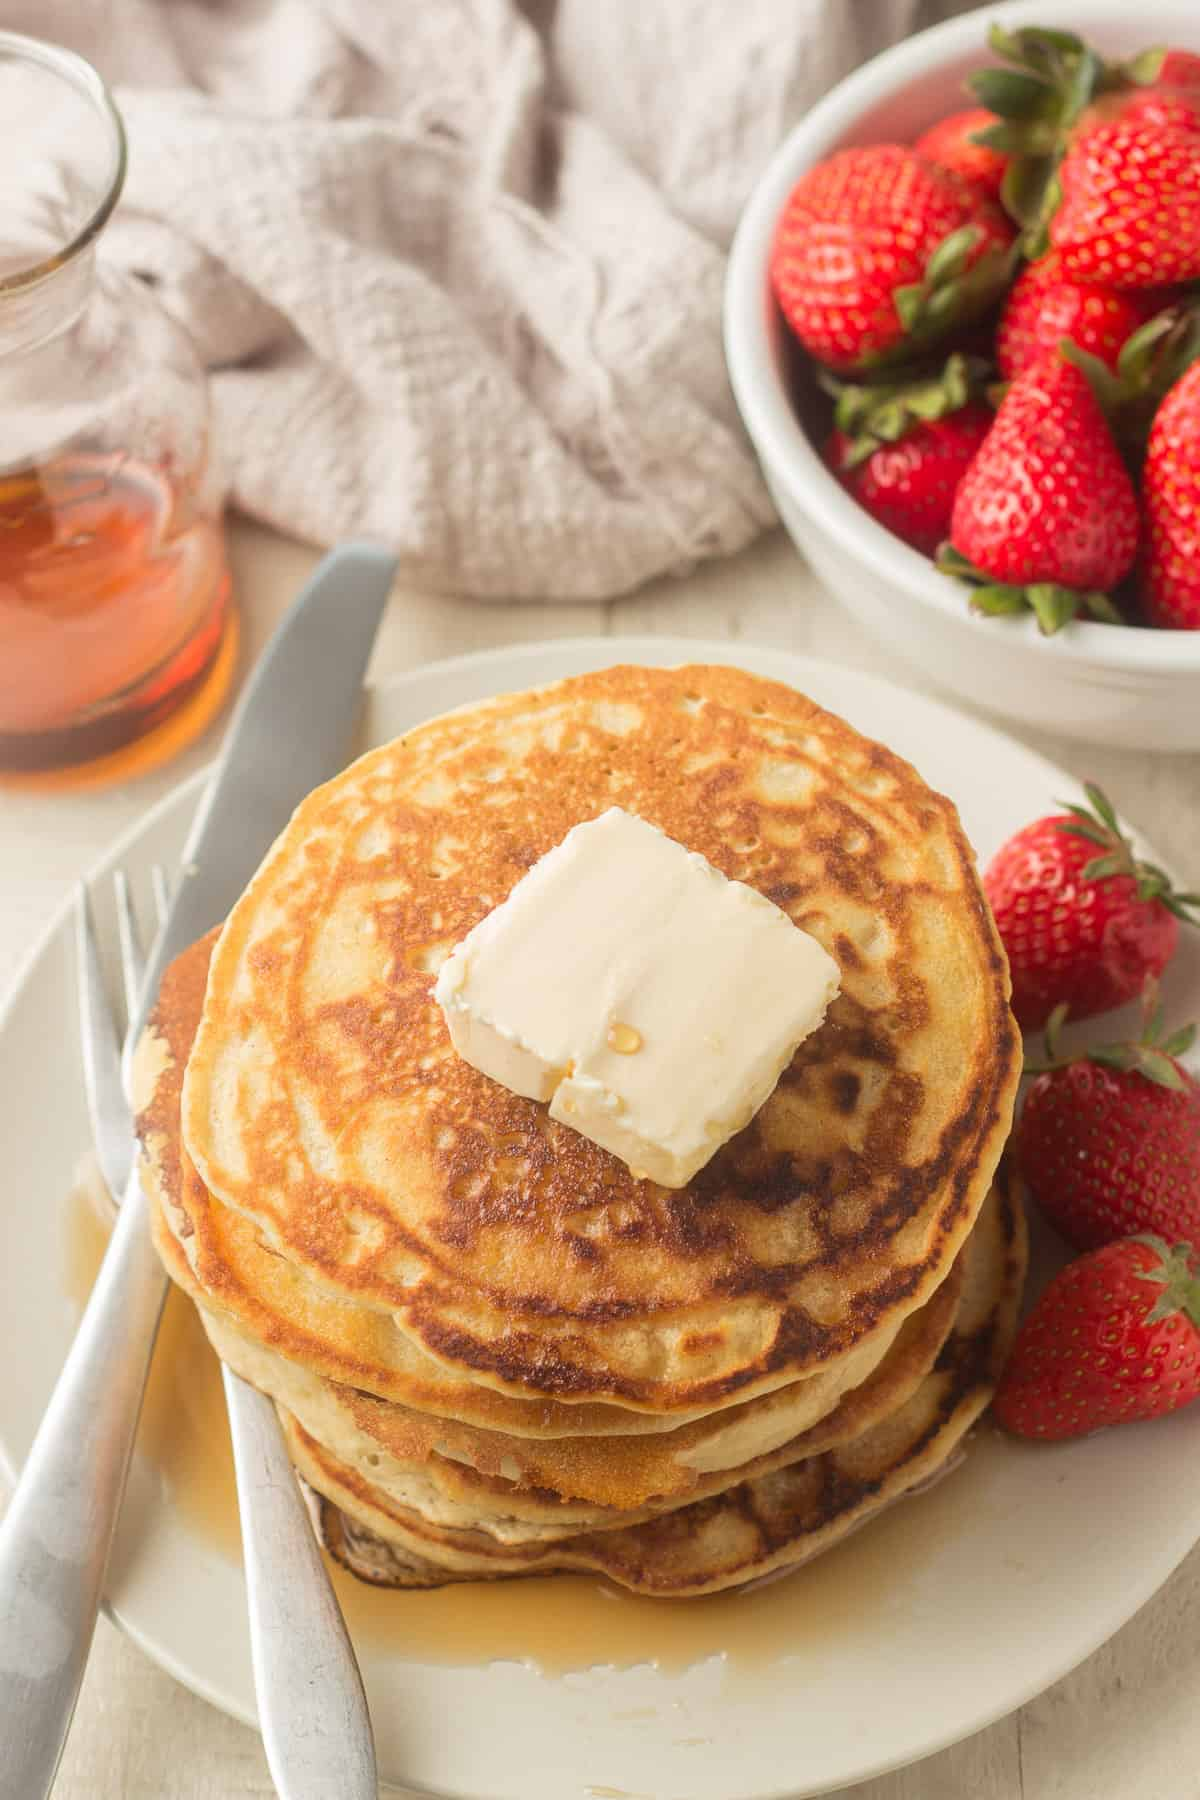 Stack of Vegan Pancakes on a Plate with Butter and Strawberries